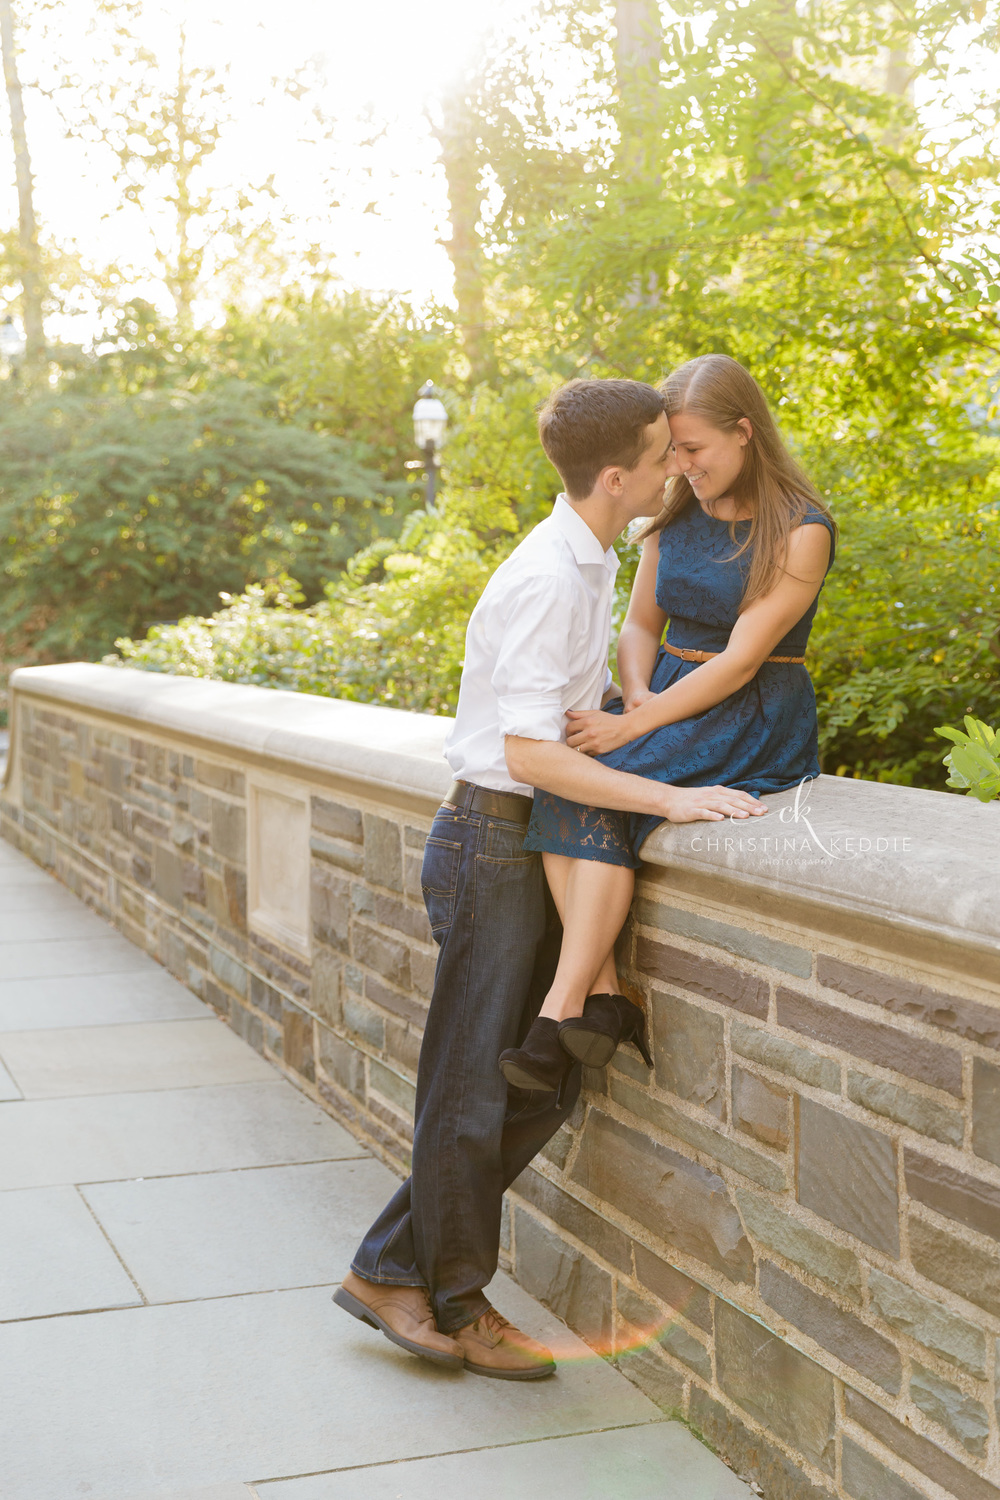 Engaged couple embracing on stone wall | Christina Keddie Photography | Princeton NJ engagement photographer